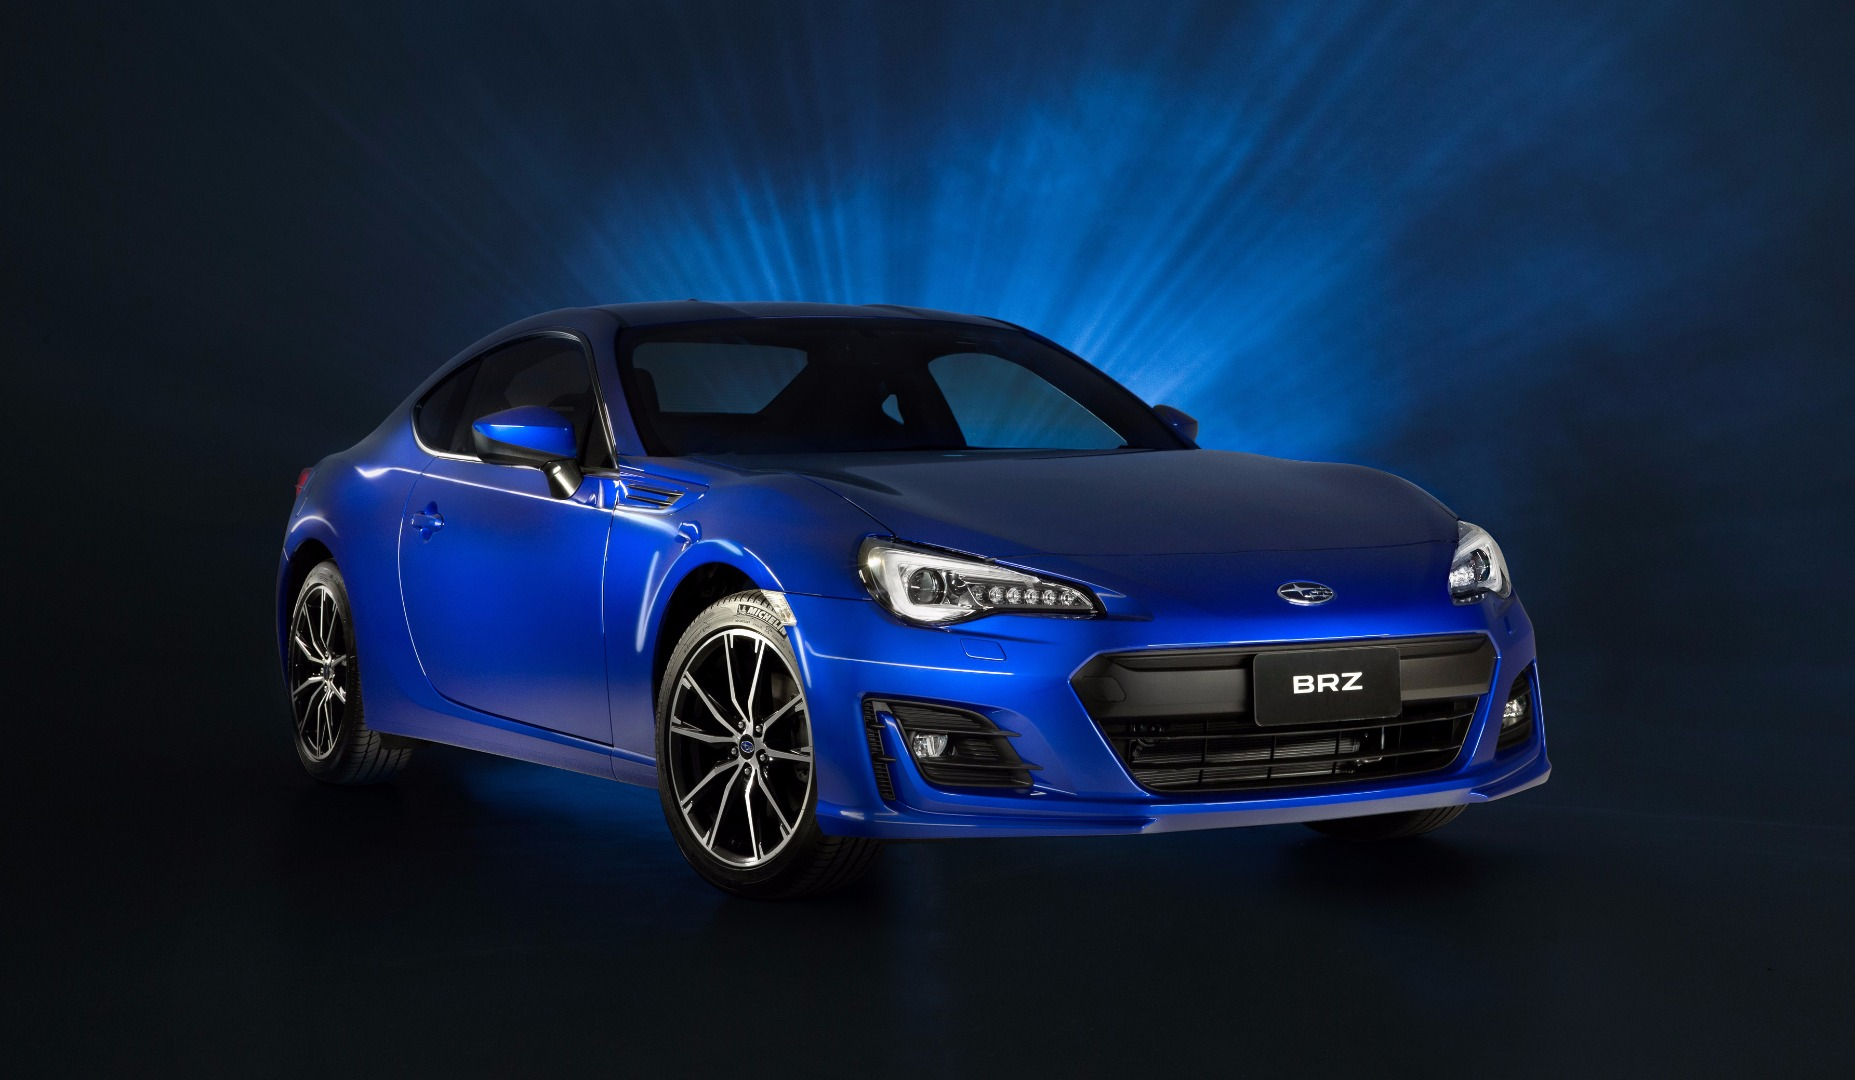 News Subaru Australia Announces 2017 Brz Coupe Starting